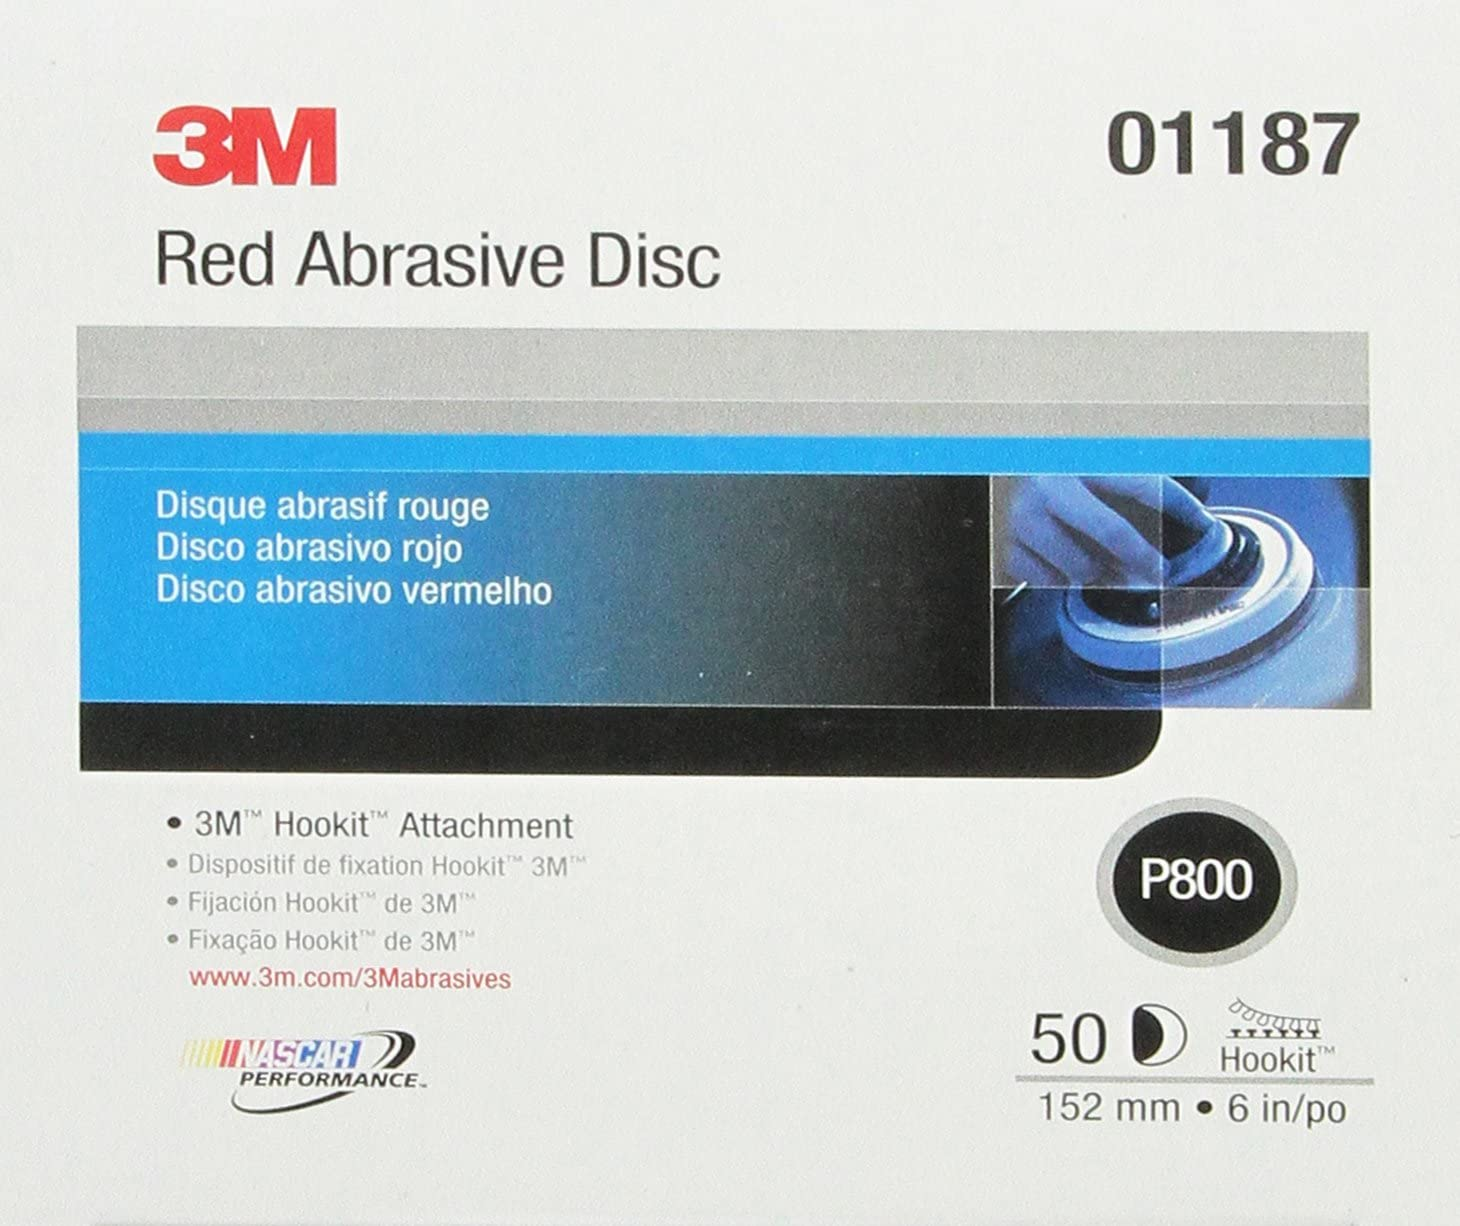 3M Hookit Red Abrasive Disc 316U, 01187, 6 in, P800, 50 discs per carton